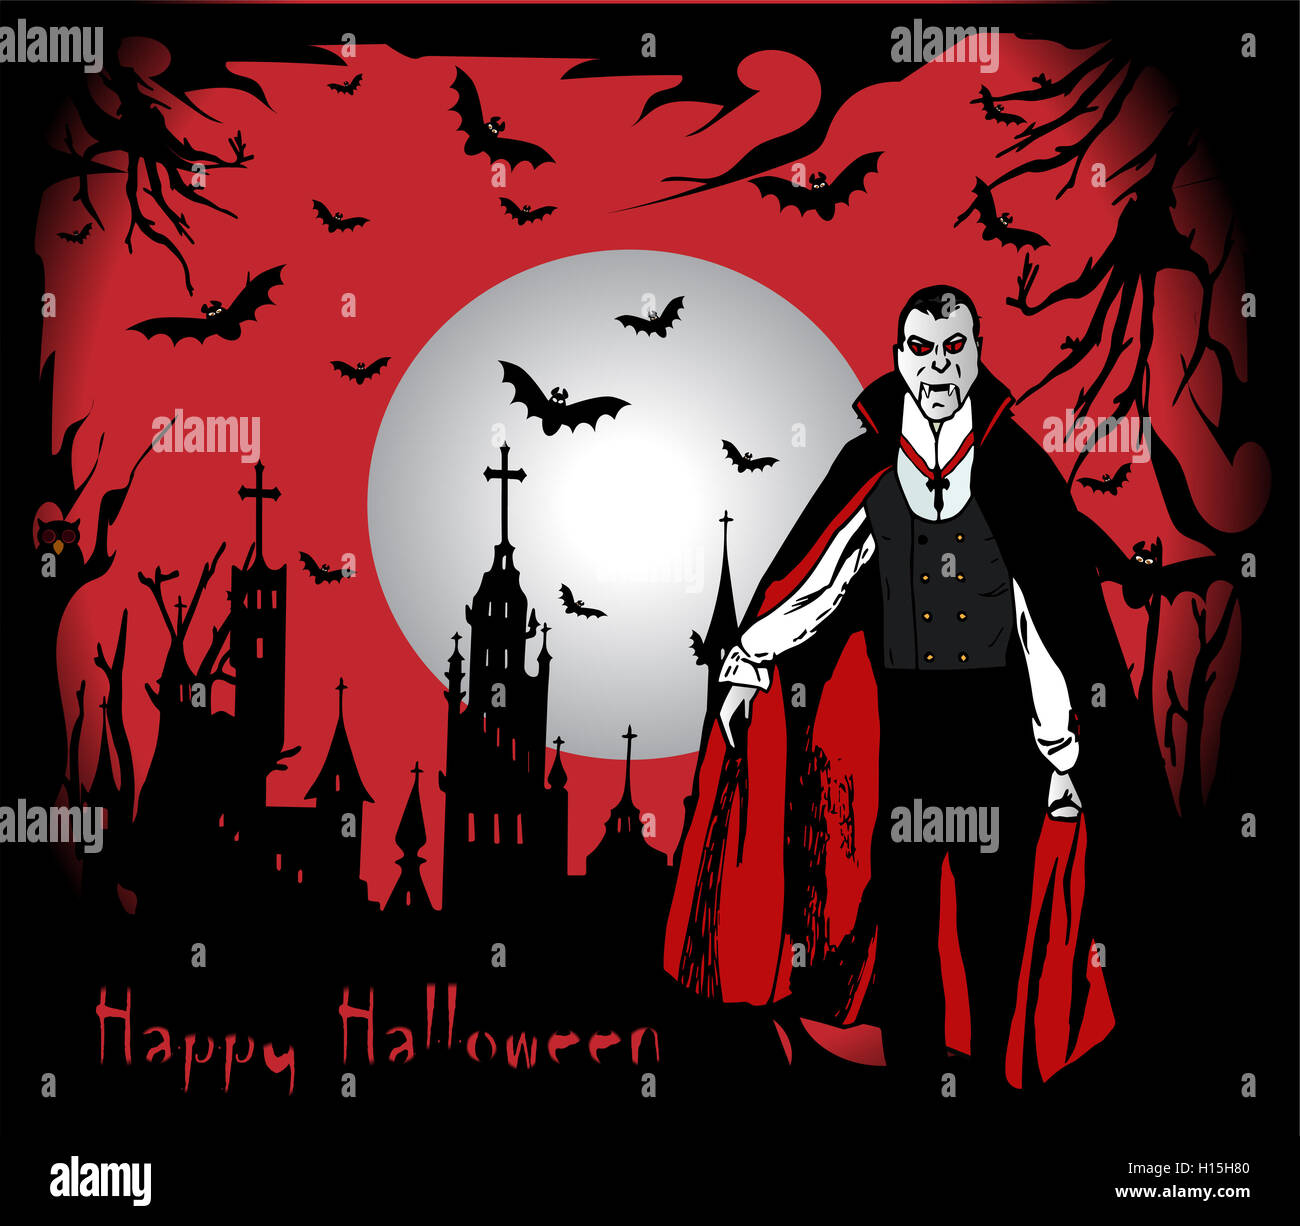 Happy Halloween background with Dracula and castle illustration ...